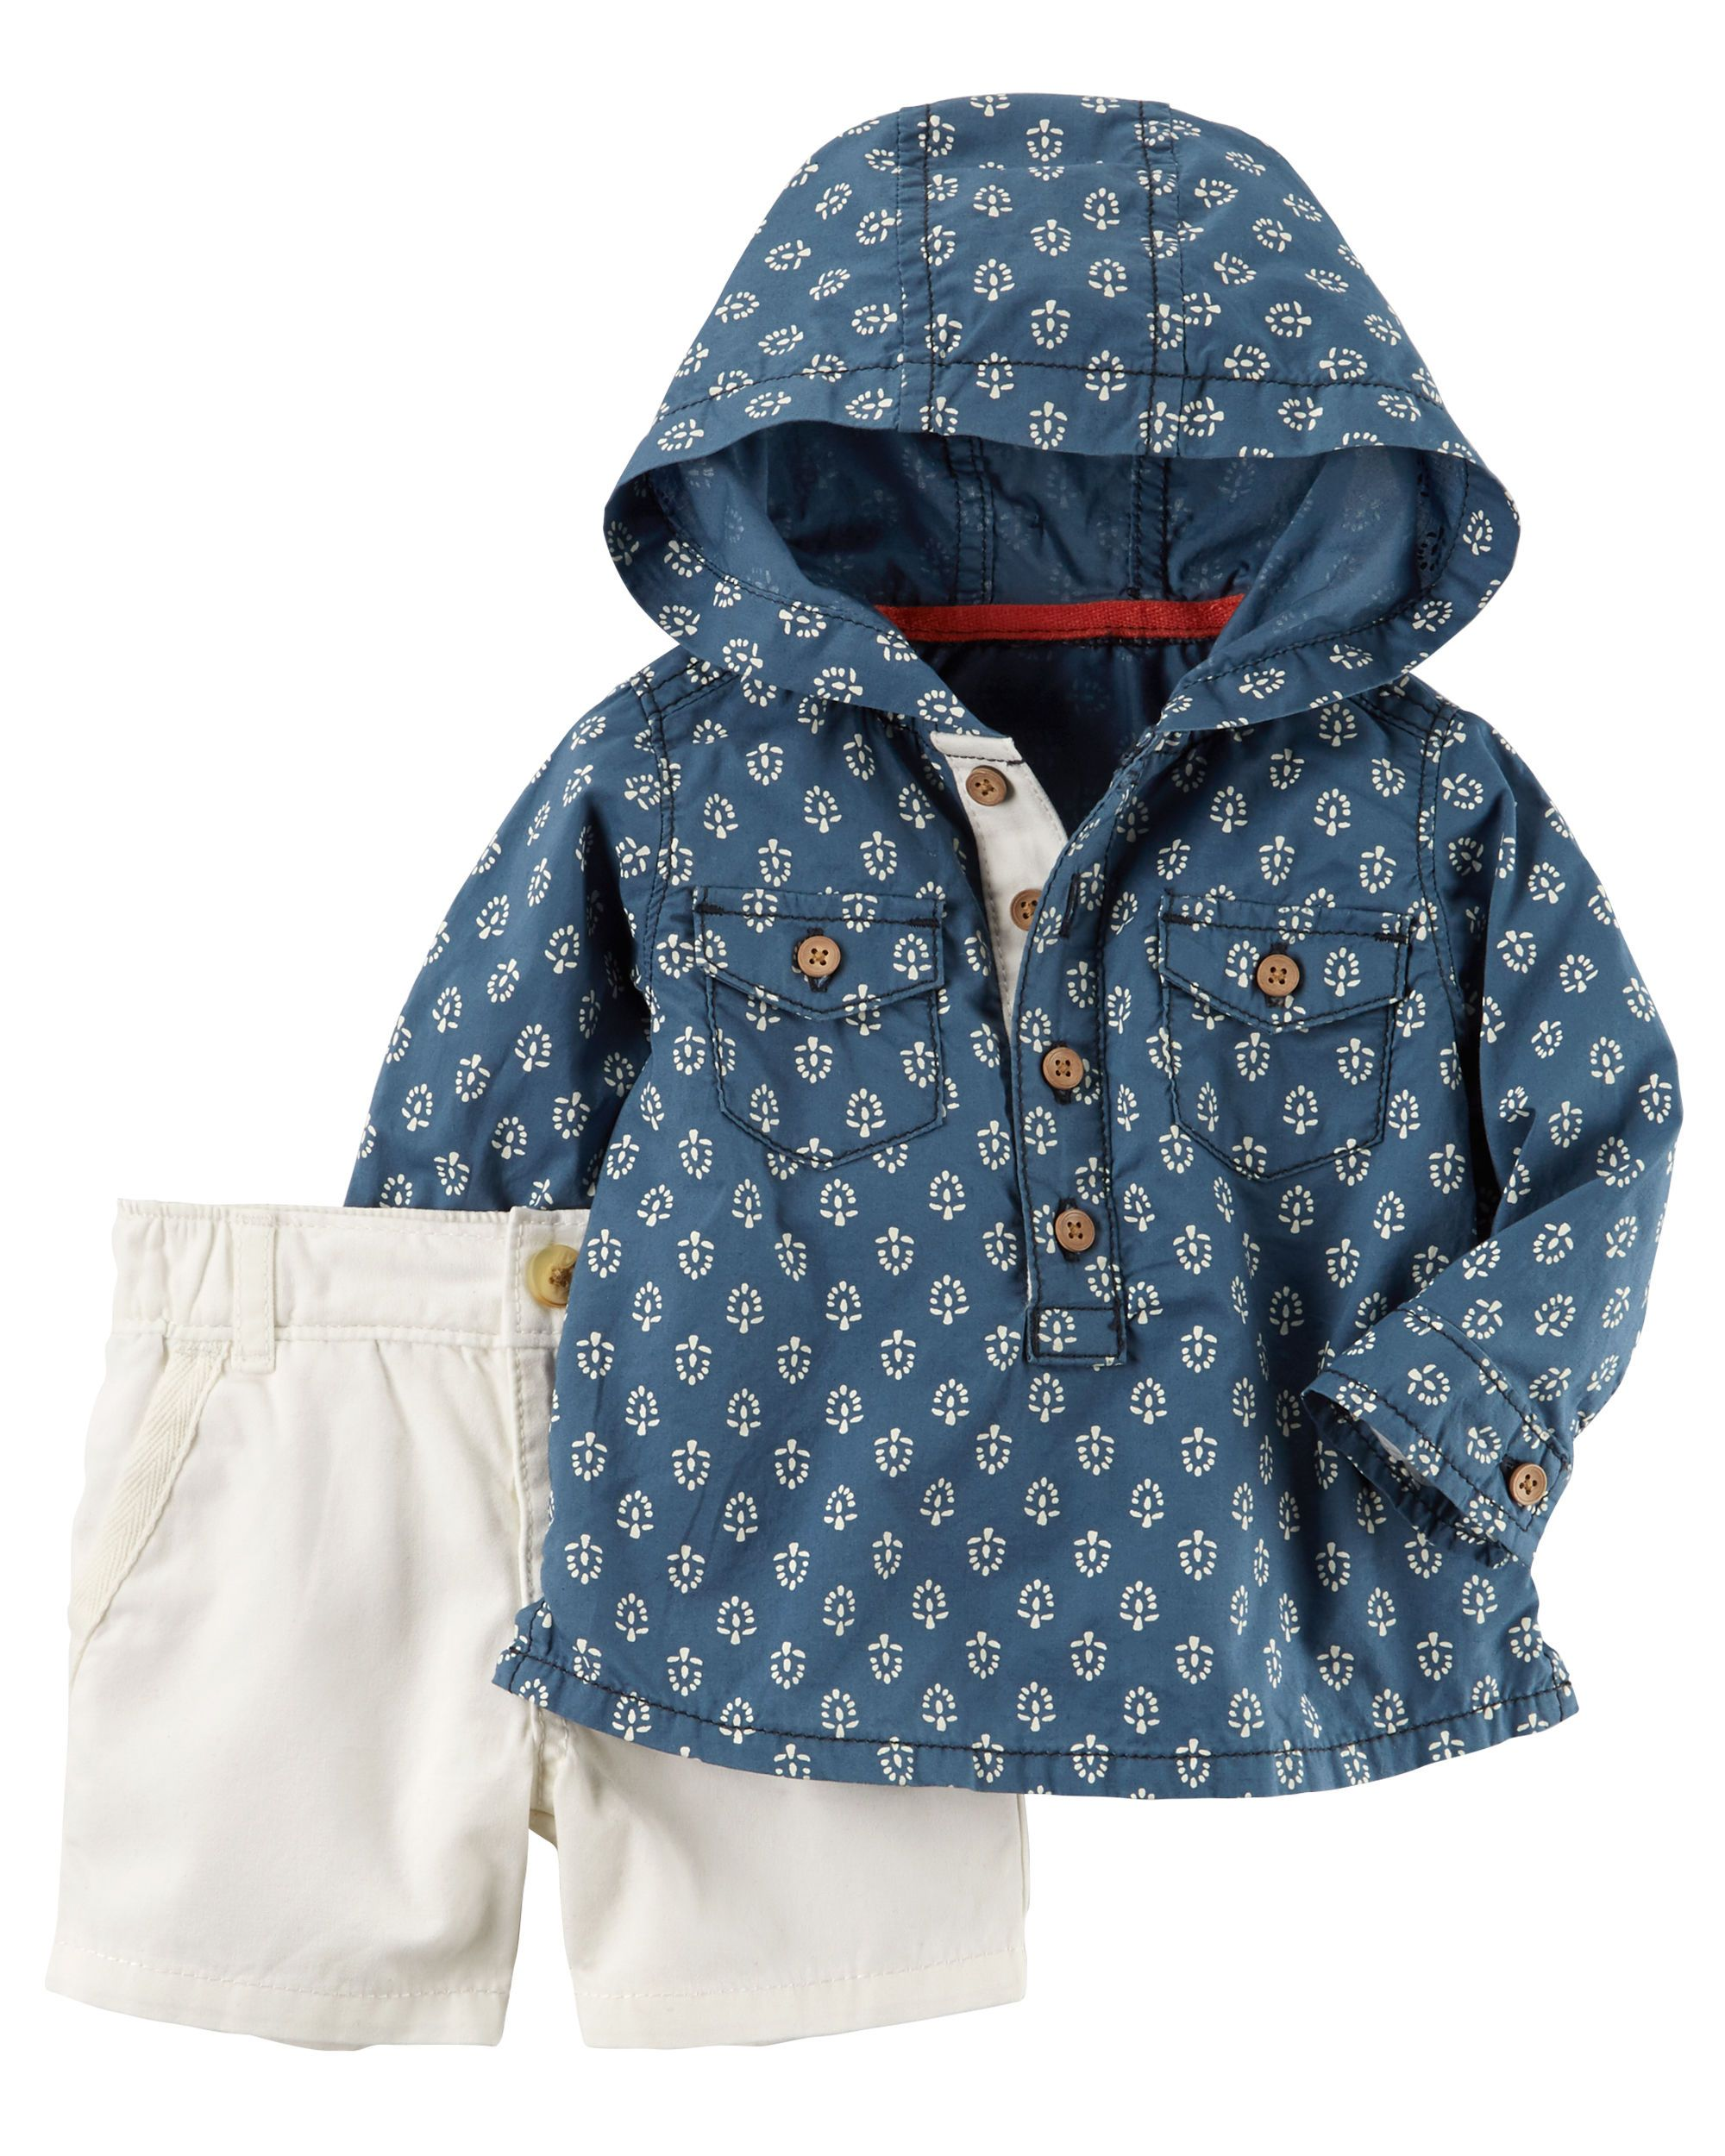 Carters Baby Boys 2 Piece Hooded Shirt and Canvas Shorts Set